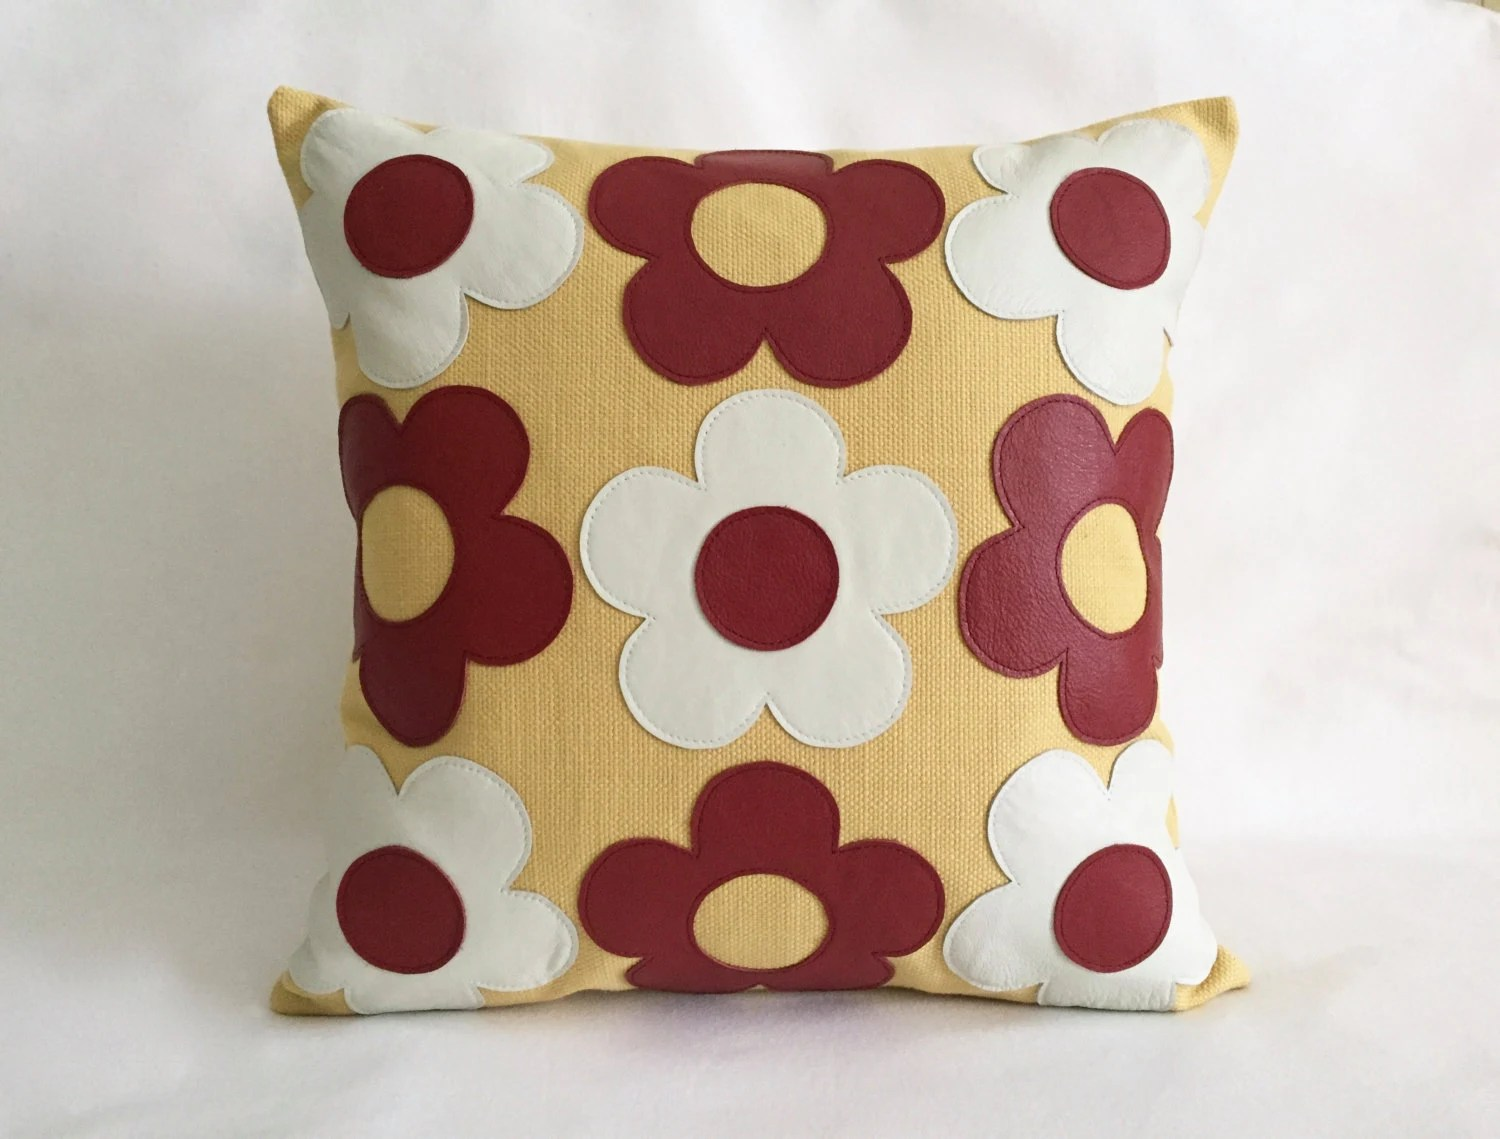 Retro Cushions Yellow Retro Pillows Red And White Leather Pillow Designed By Renaissance Cushions